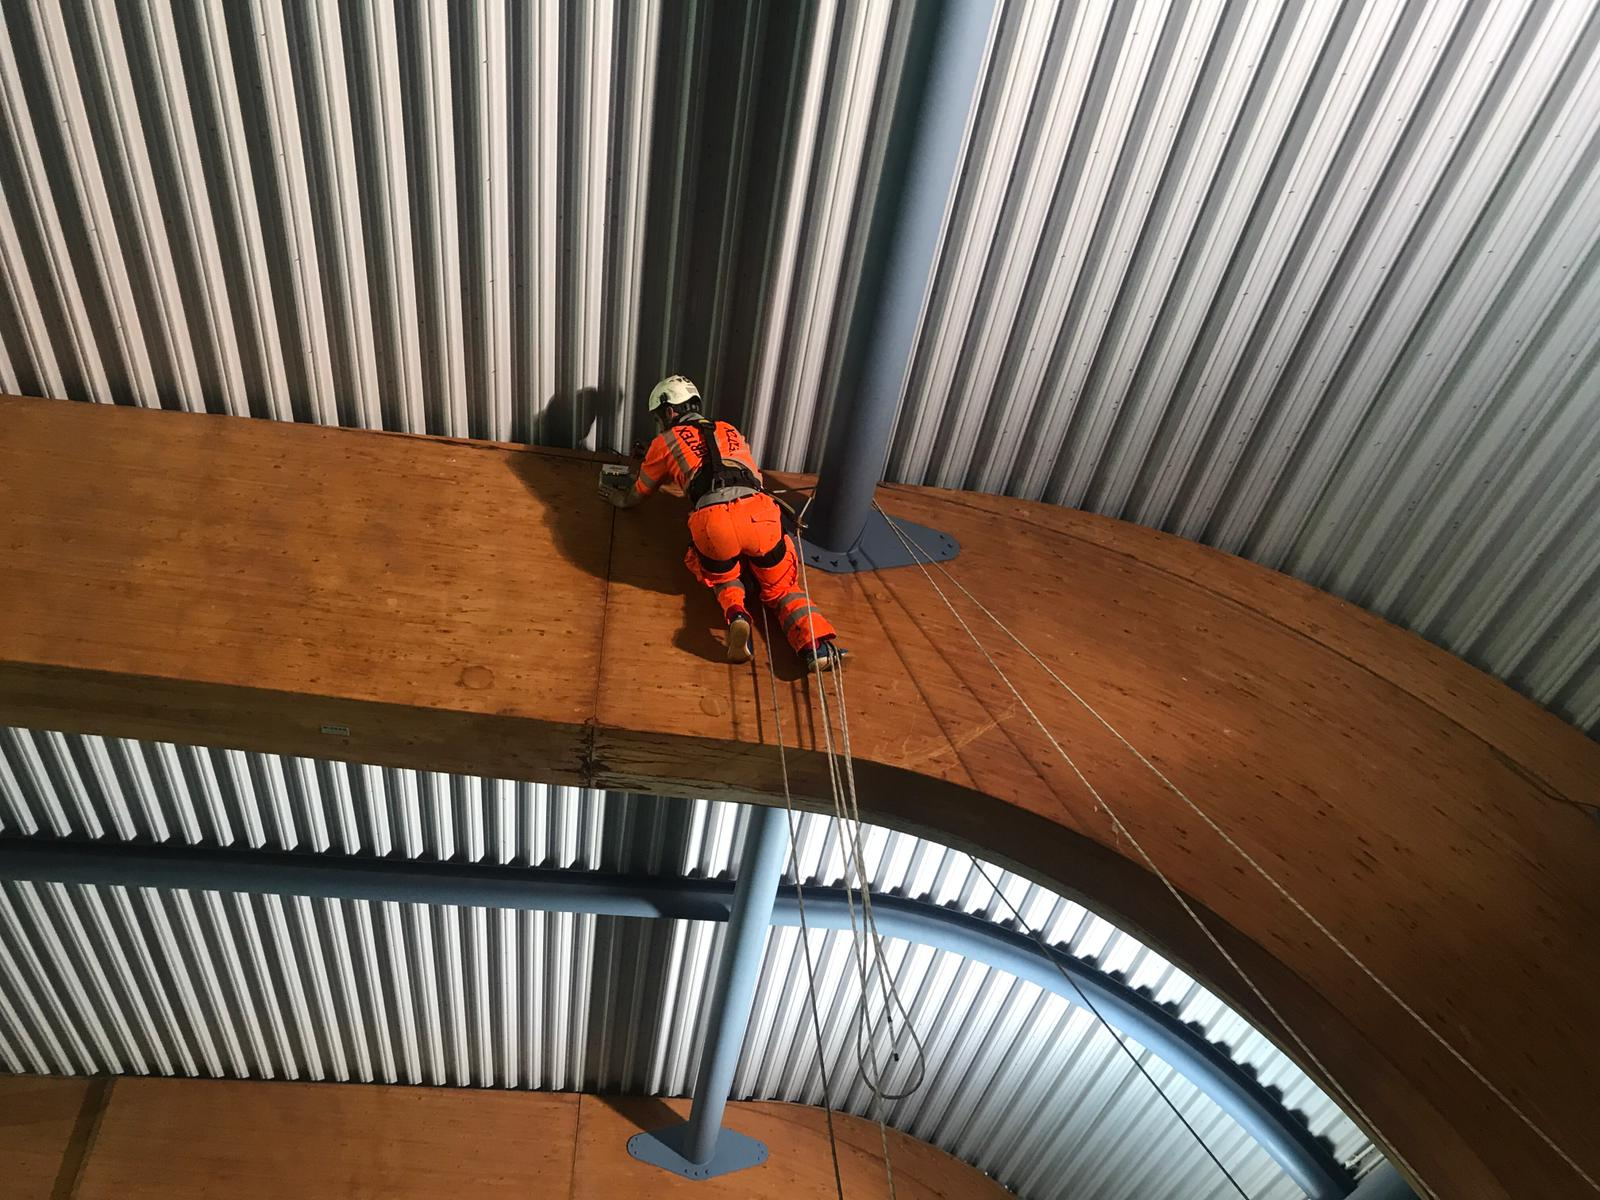 Glulam Beam Fracture Inspection and Monitoring